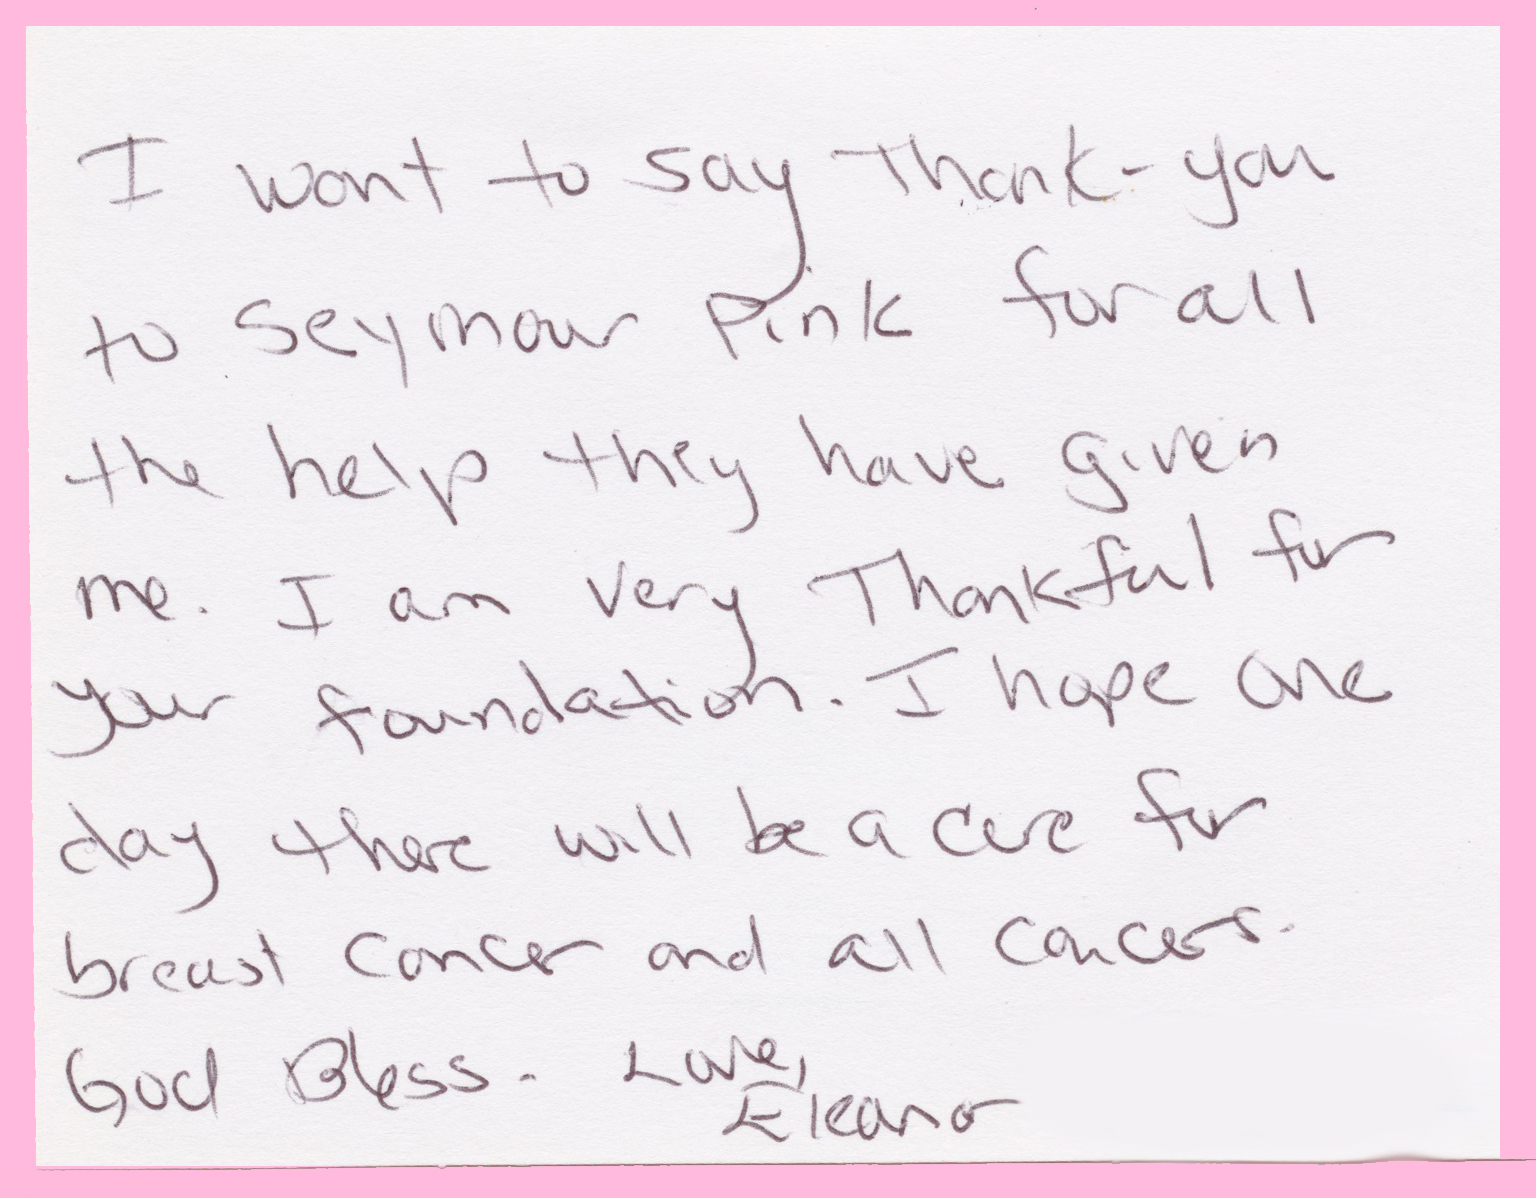 testimonials seymour pink just a short thank you note for granting me the xxxx for my rent it was so helpful